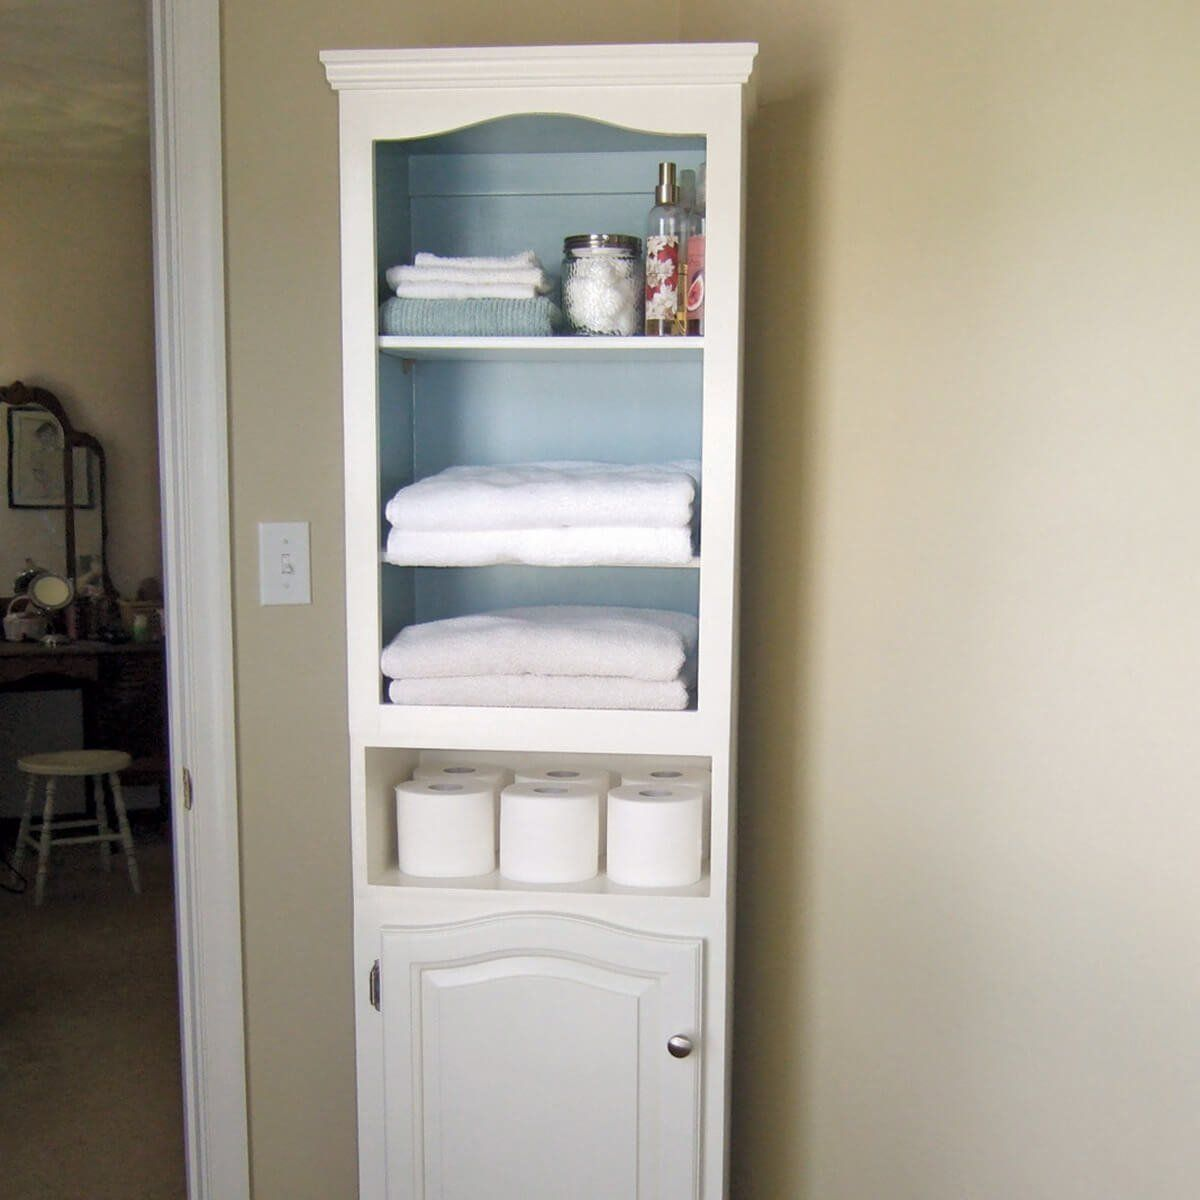 These Secondhand Cabinets Sat In The Garage For Two Years Before Janet Johnson Got The Inspira Tall Bathroom Storage Linen Storage Cabinet Tall Cabinet Storage